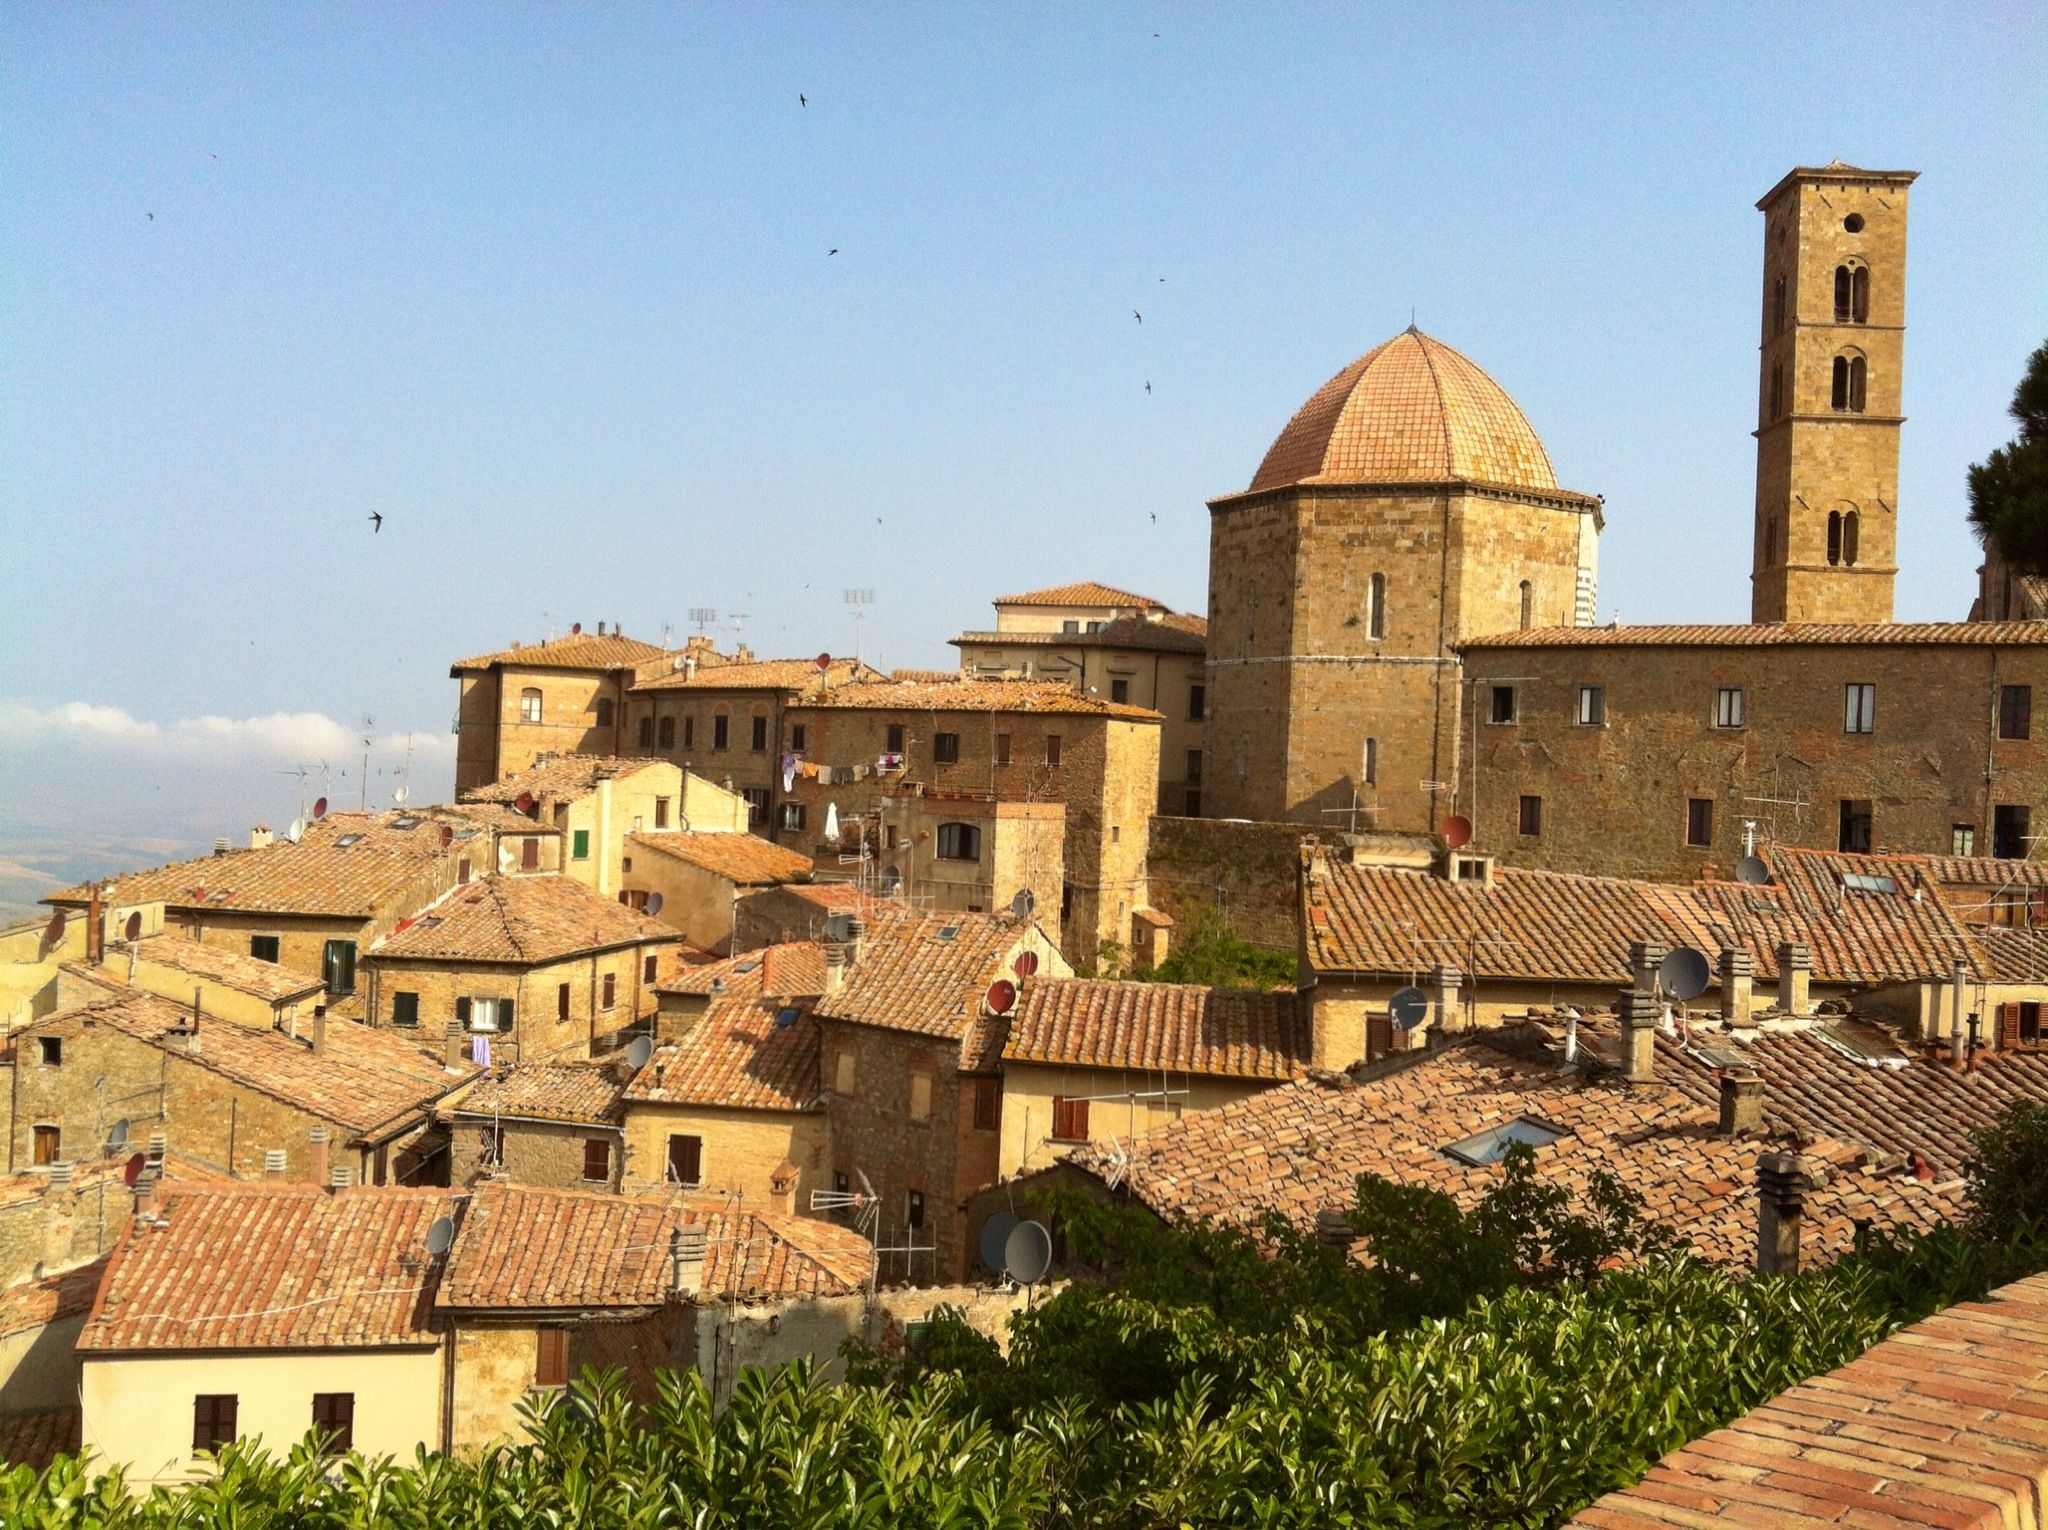 Volterra Italy  City pictures : Volterra Italy | Places I have been | Pinterest